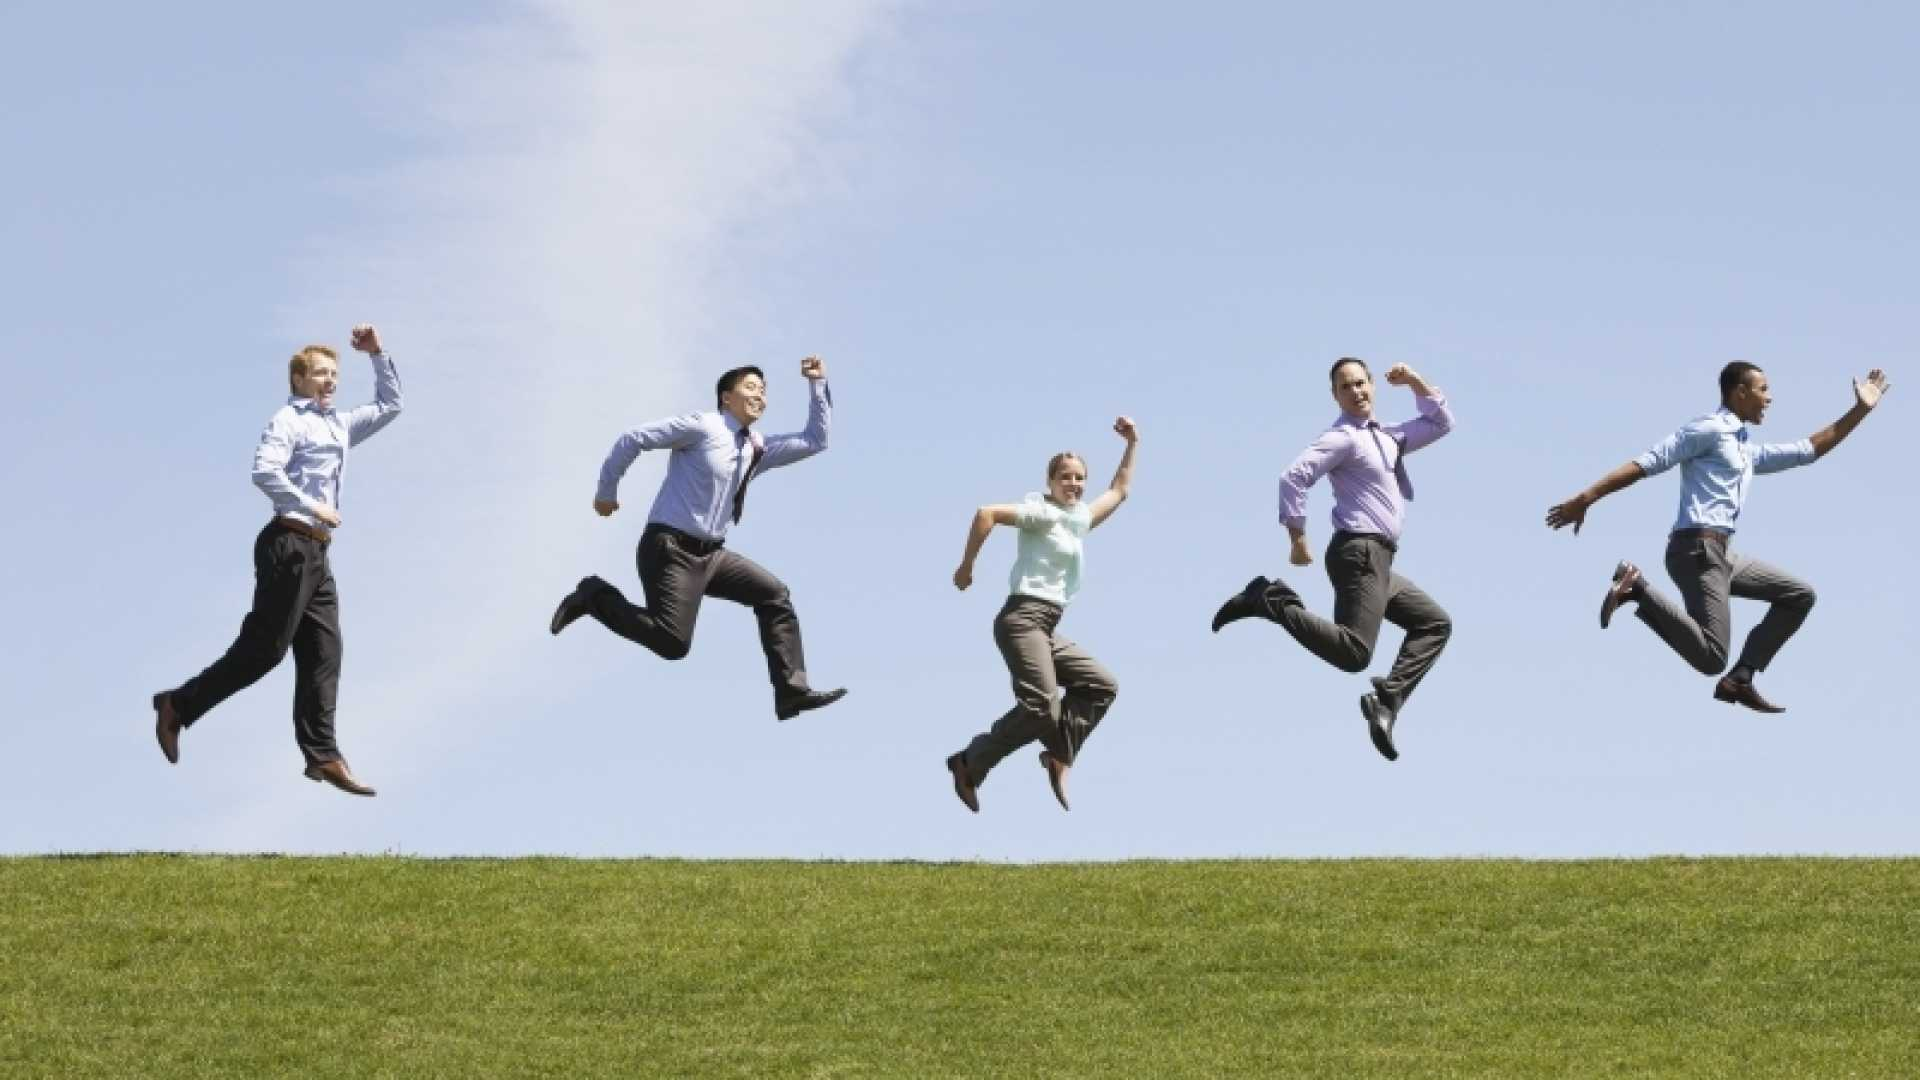 10 Ways to Create an Irresistibly Great Workplace